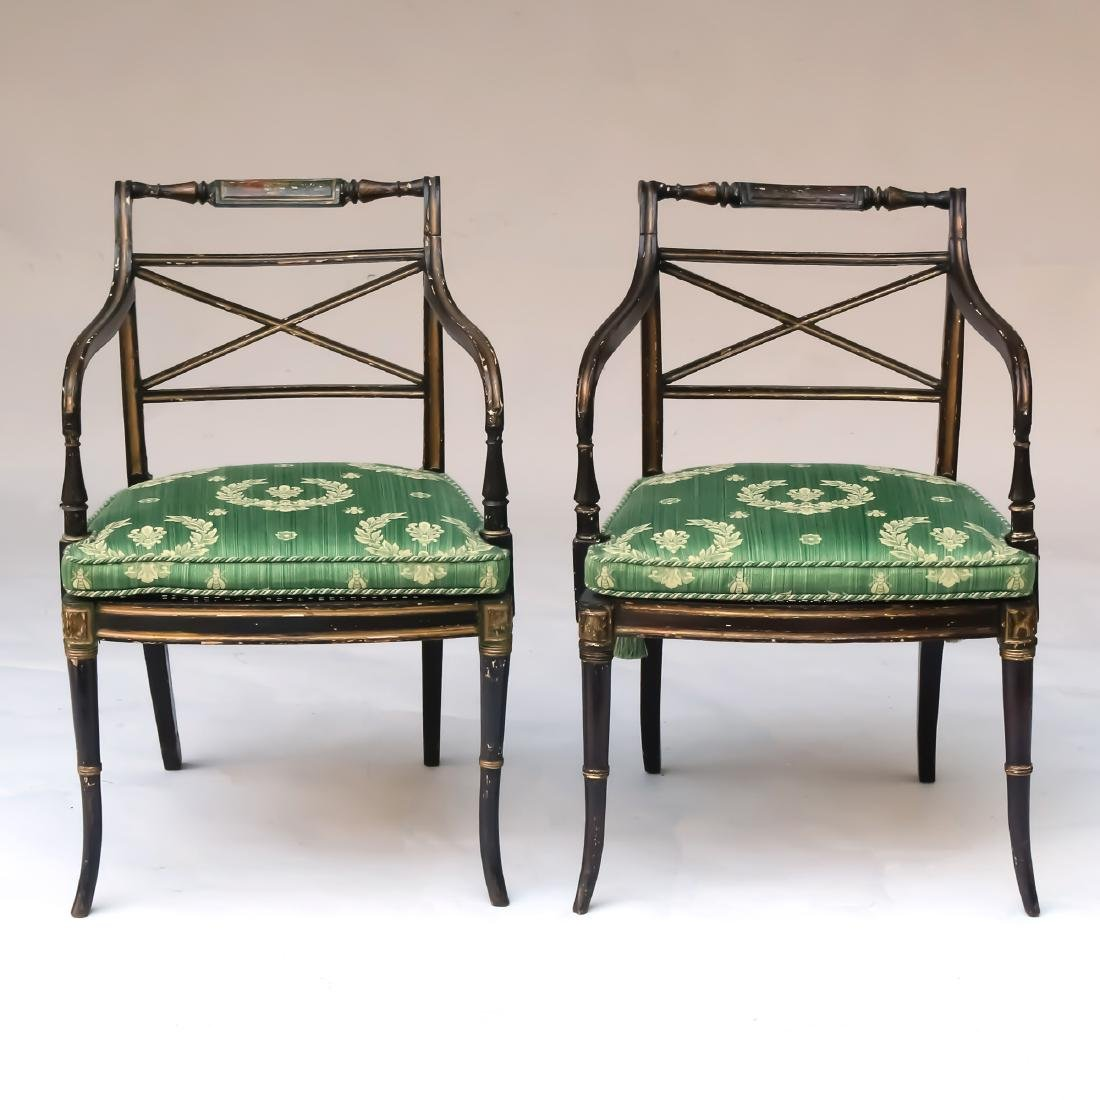 PAIR REGENCY PARCEL-GILT EBONIZED ARMCHAIRS - 2